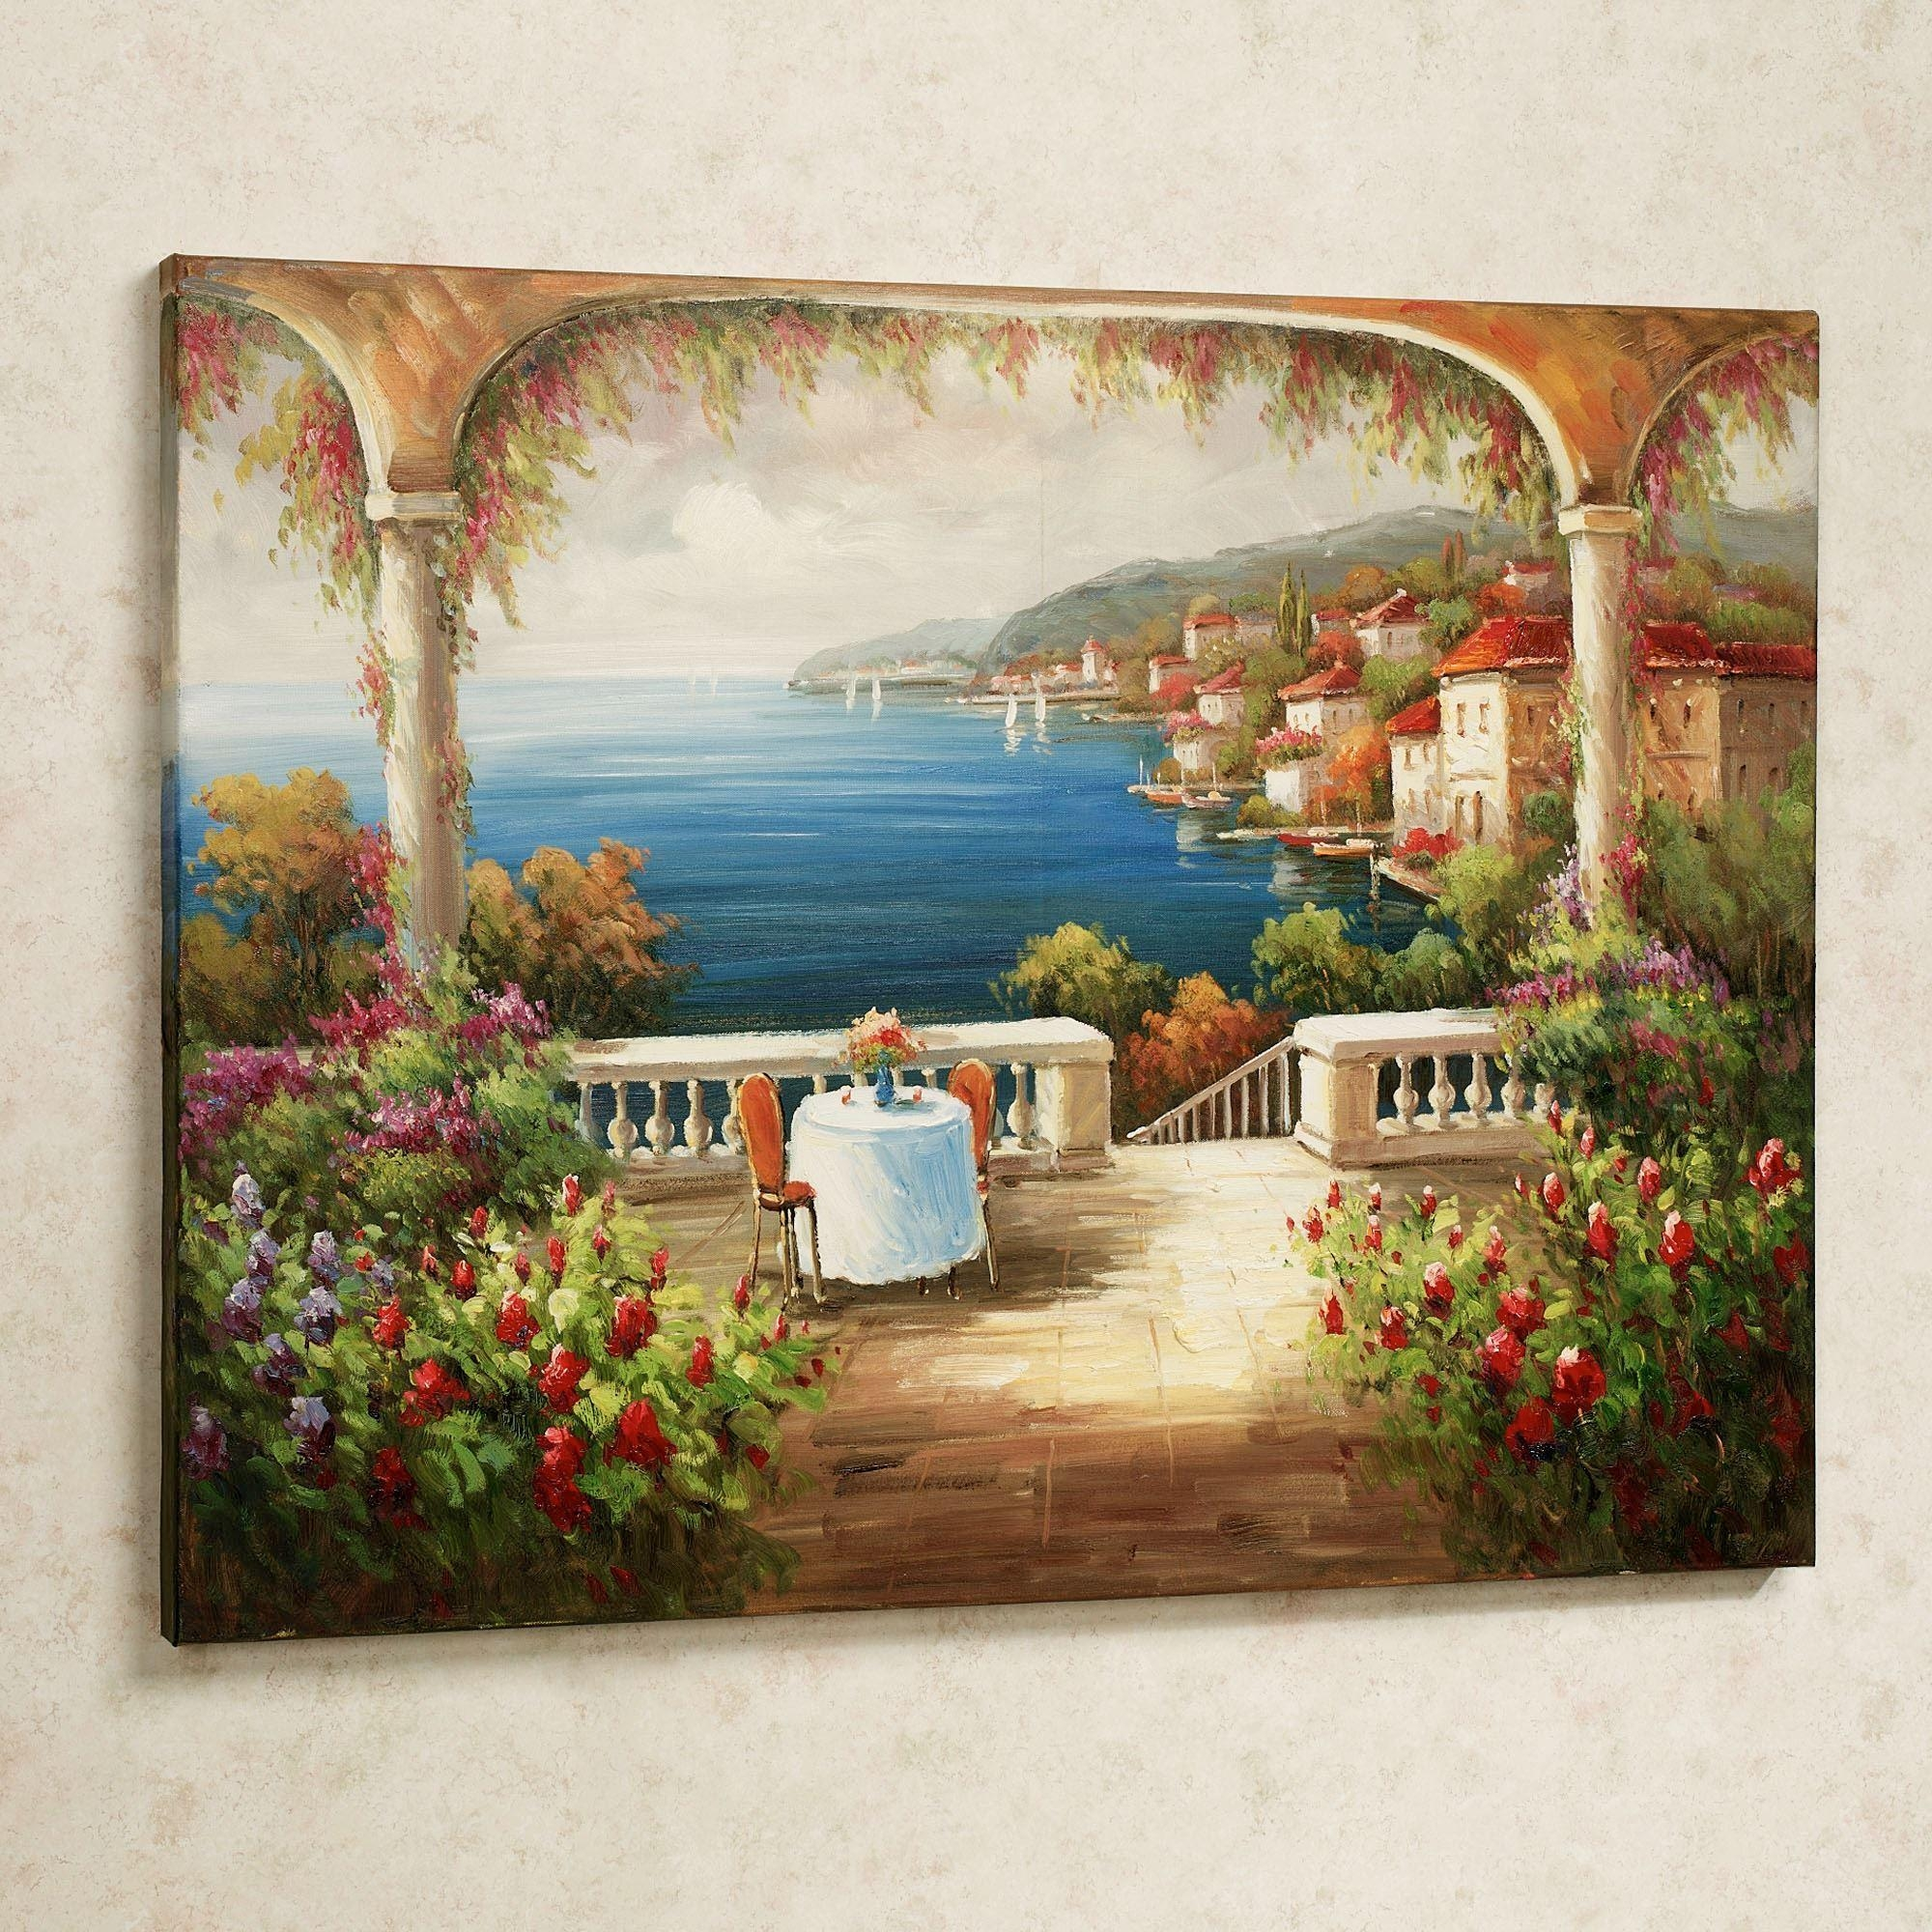 Kitchen : Cheap Artwork Bedroom Artwork Dining Room Wall Art Inside Framed Italian Wall Art (View 7 of 20)